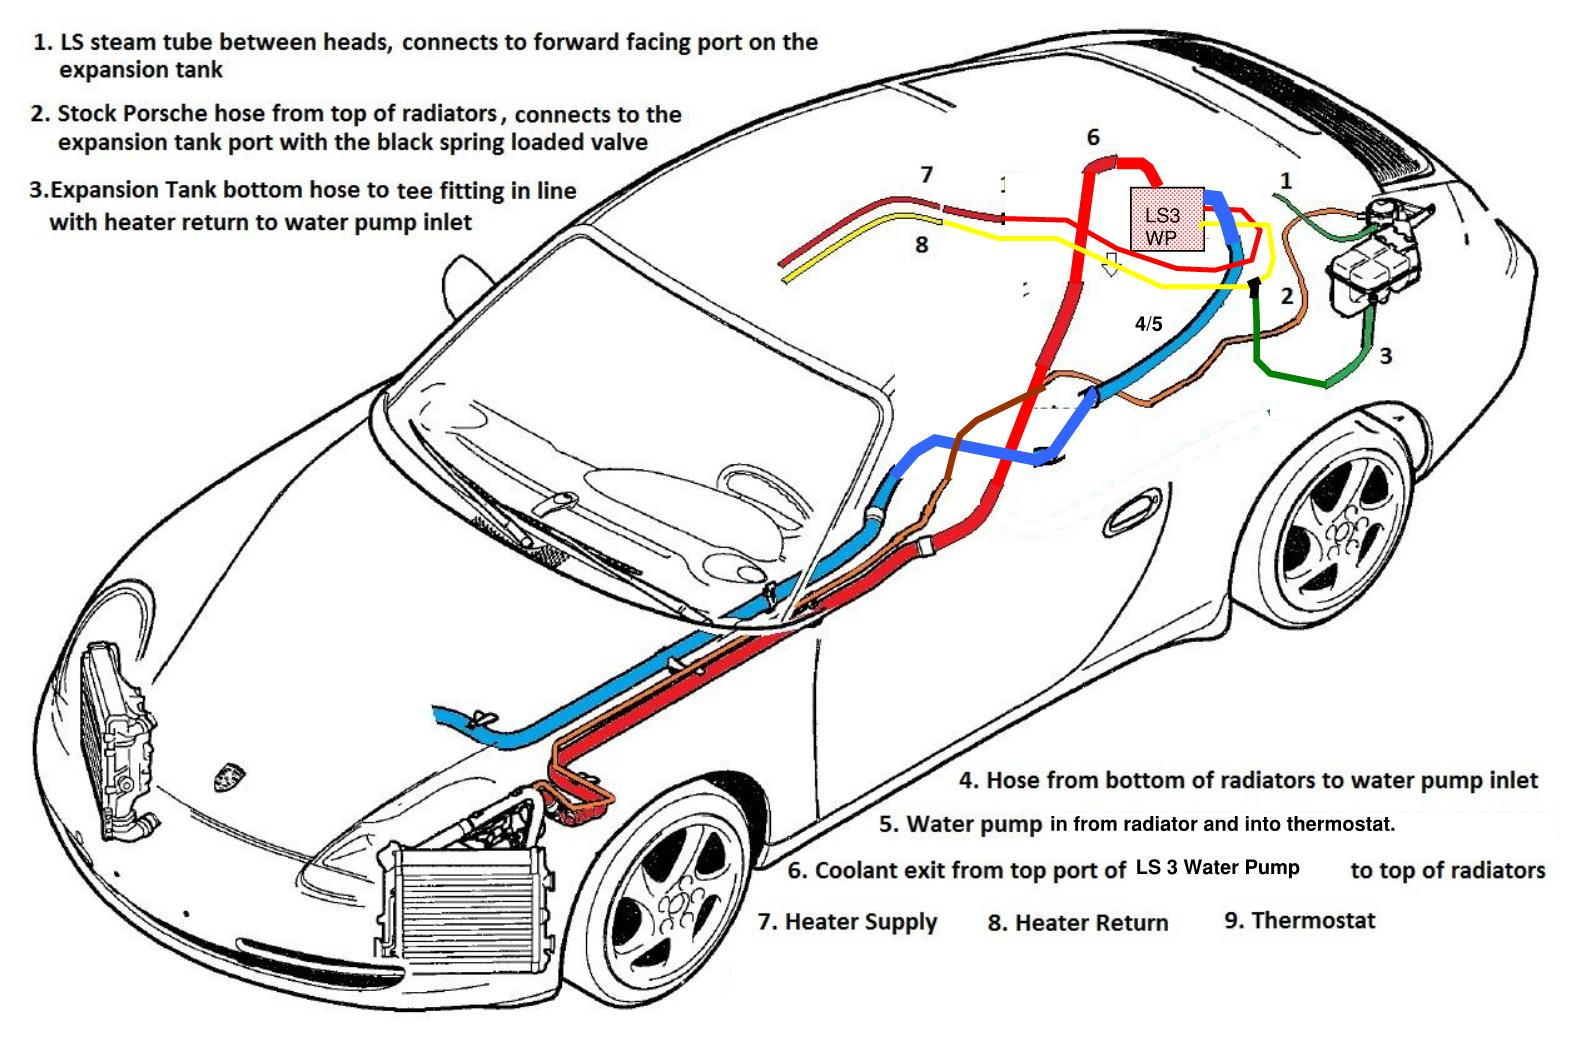 996 coolant flow diagram  996  free engine image for user